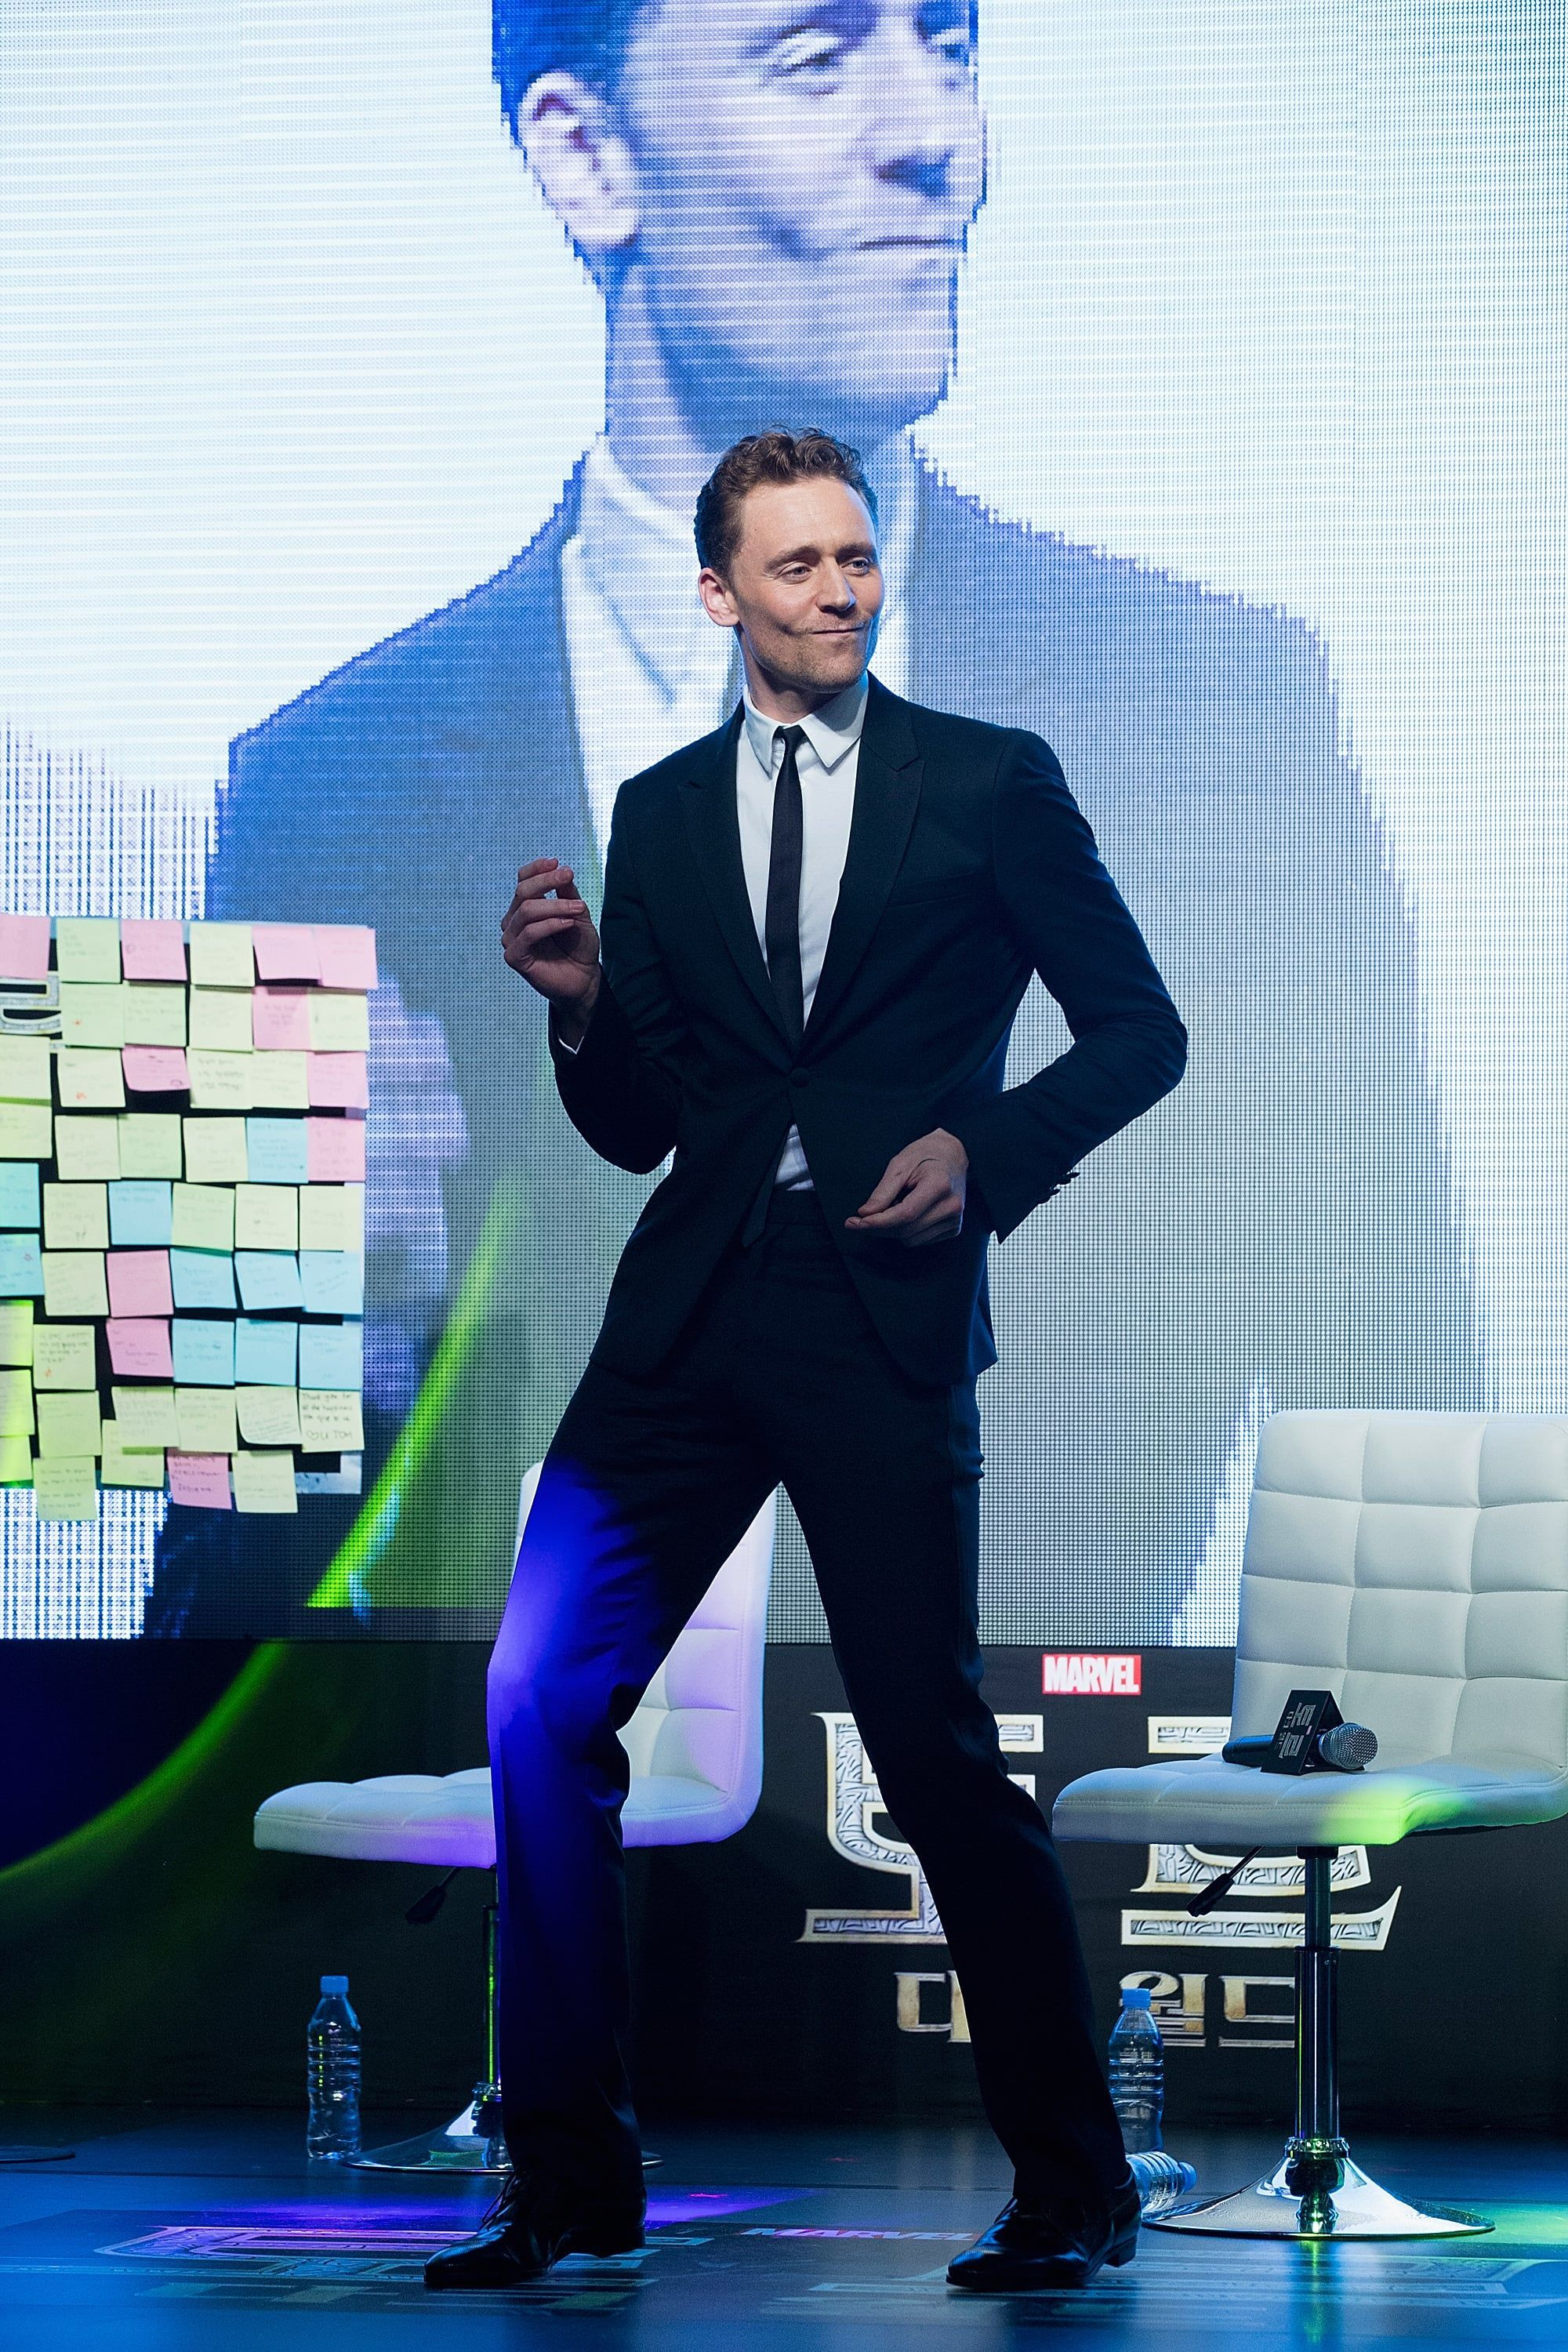 Take a Moment to Appreciate Tom Hiddleston's Hottest Moments -   - #Actresses #AngelinaJolie #appreciate #hiddleston #Hiddlestons #HollywoodActresses #hottest #kdrama #moment #moments #Tom #TomHiddleston